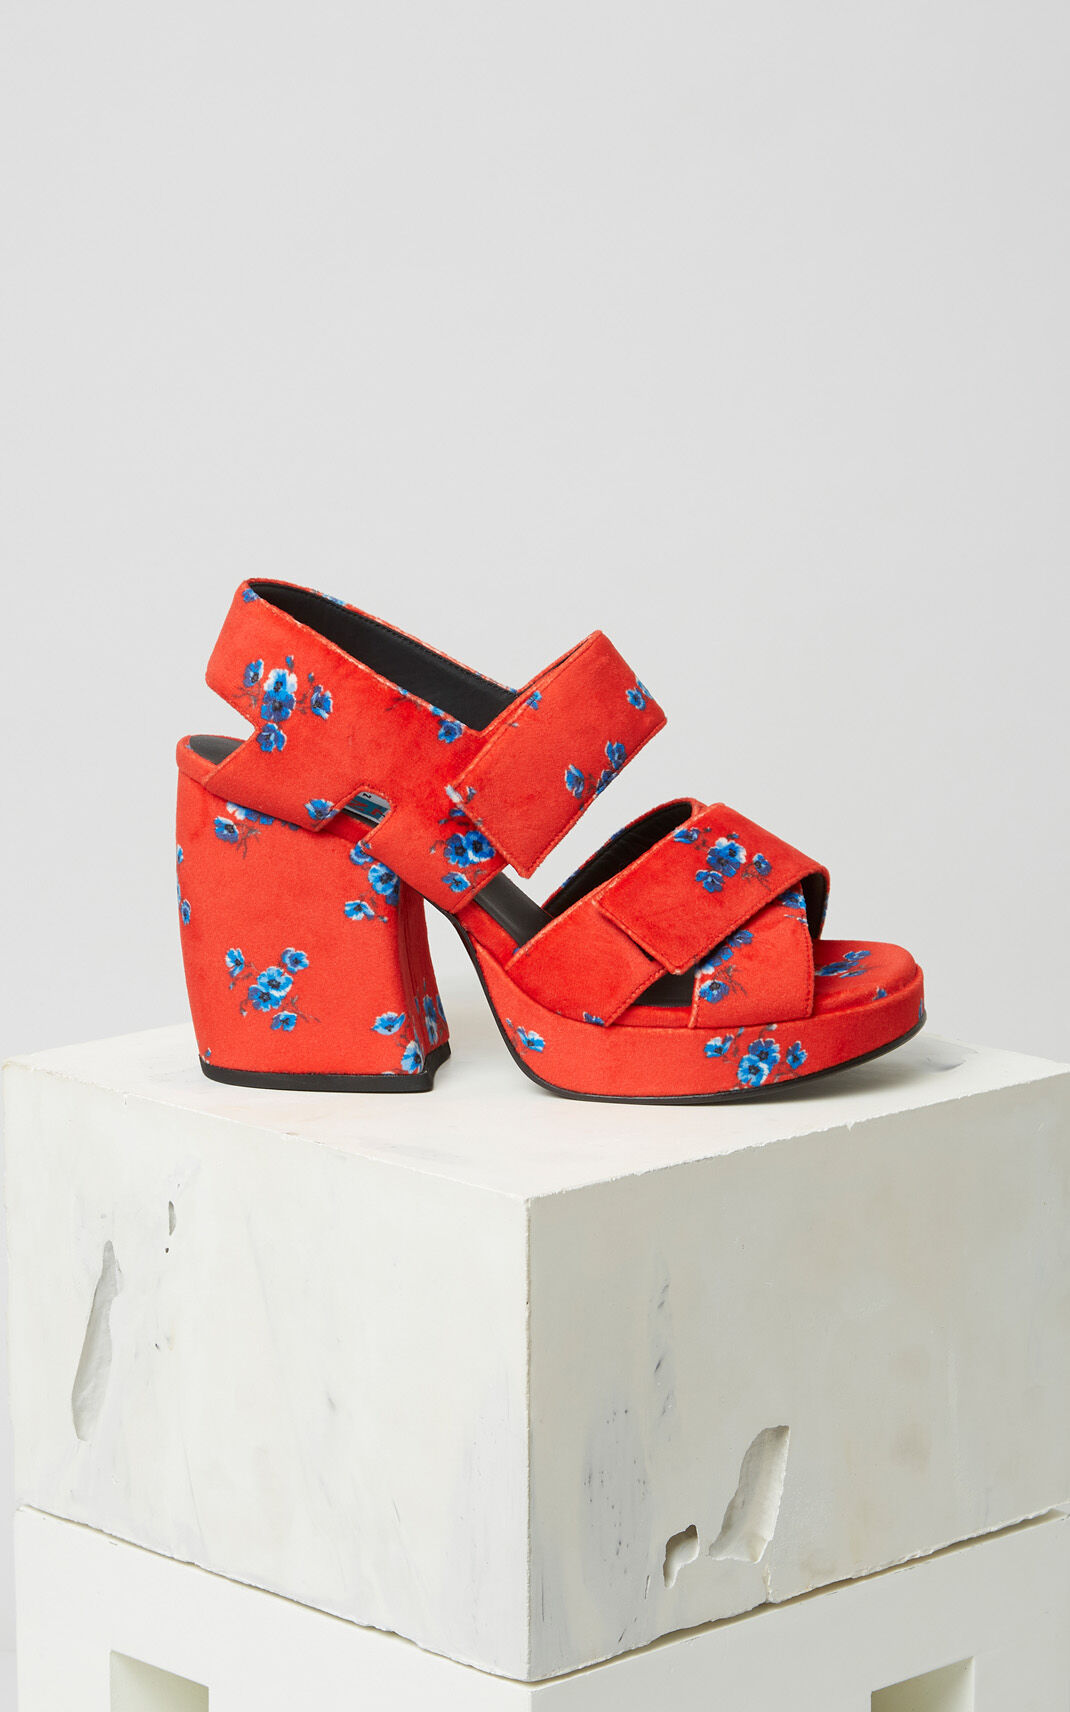 MEDIUM RED May flowers Sandals for unisex KENZO